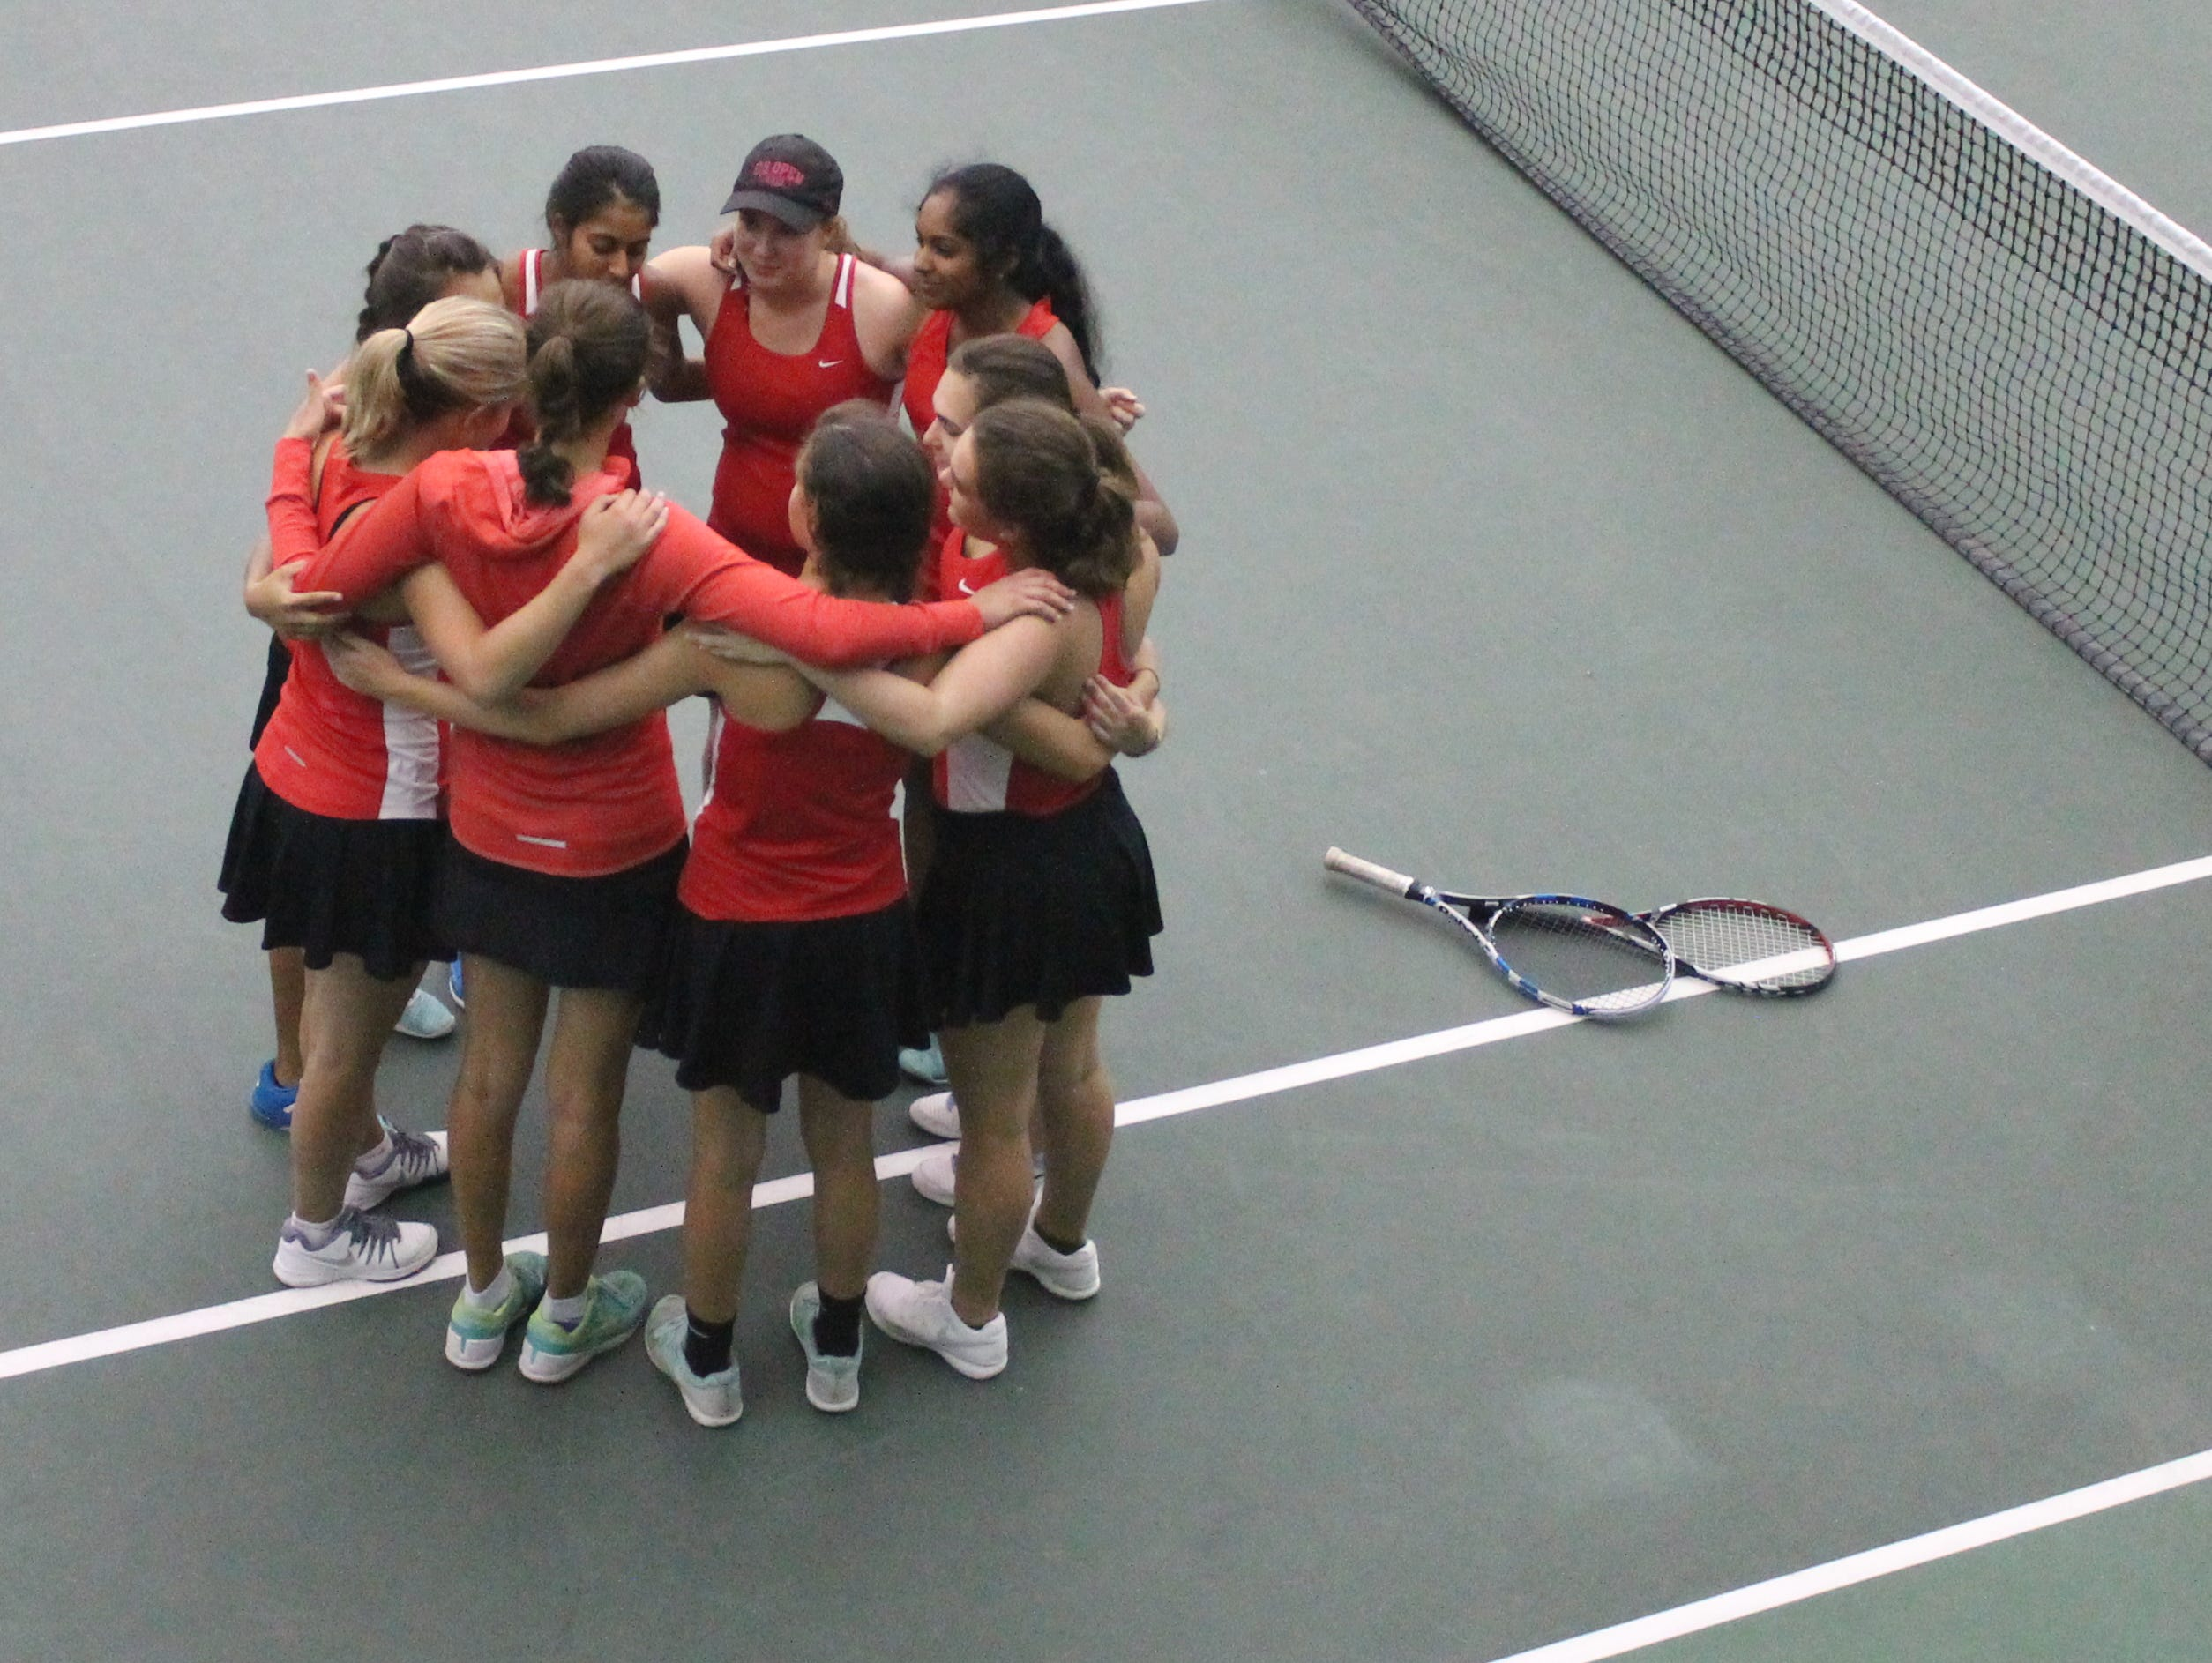 Central High School's girls tennis team became the first group of Bulldogs in any sport to reach a state playoff semifinal in 32 years.